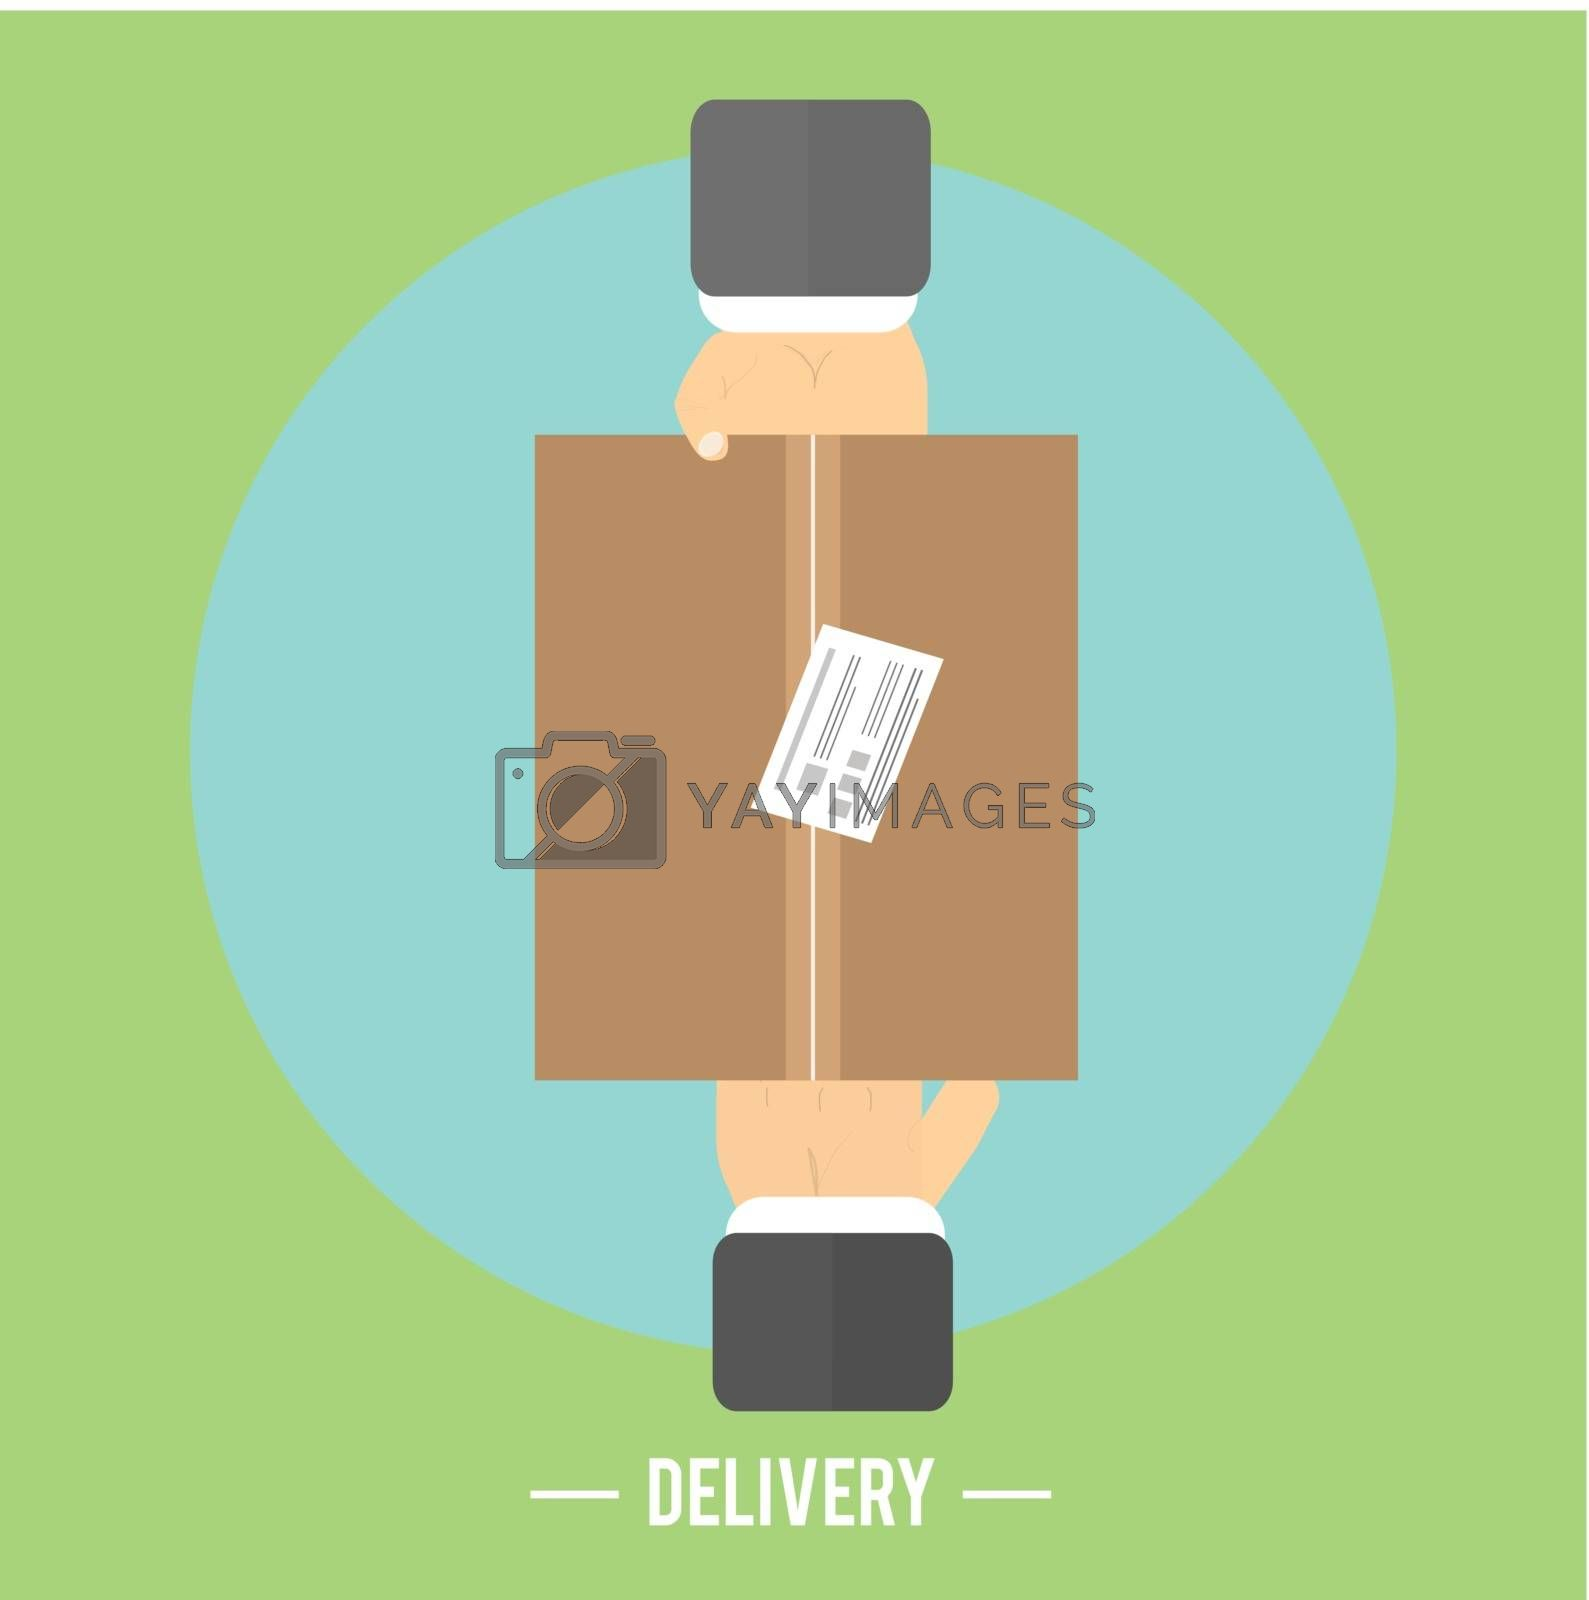 Delivery box and two hands. Delivery service 24 hours. Cargo truck symbol